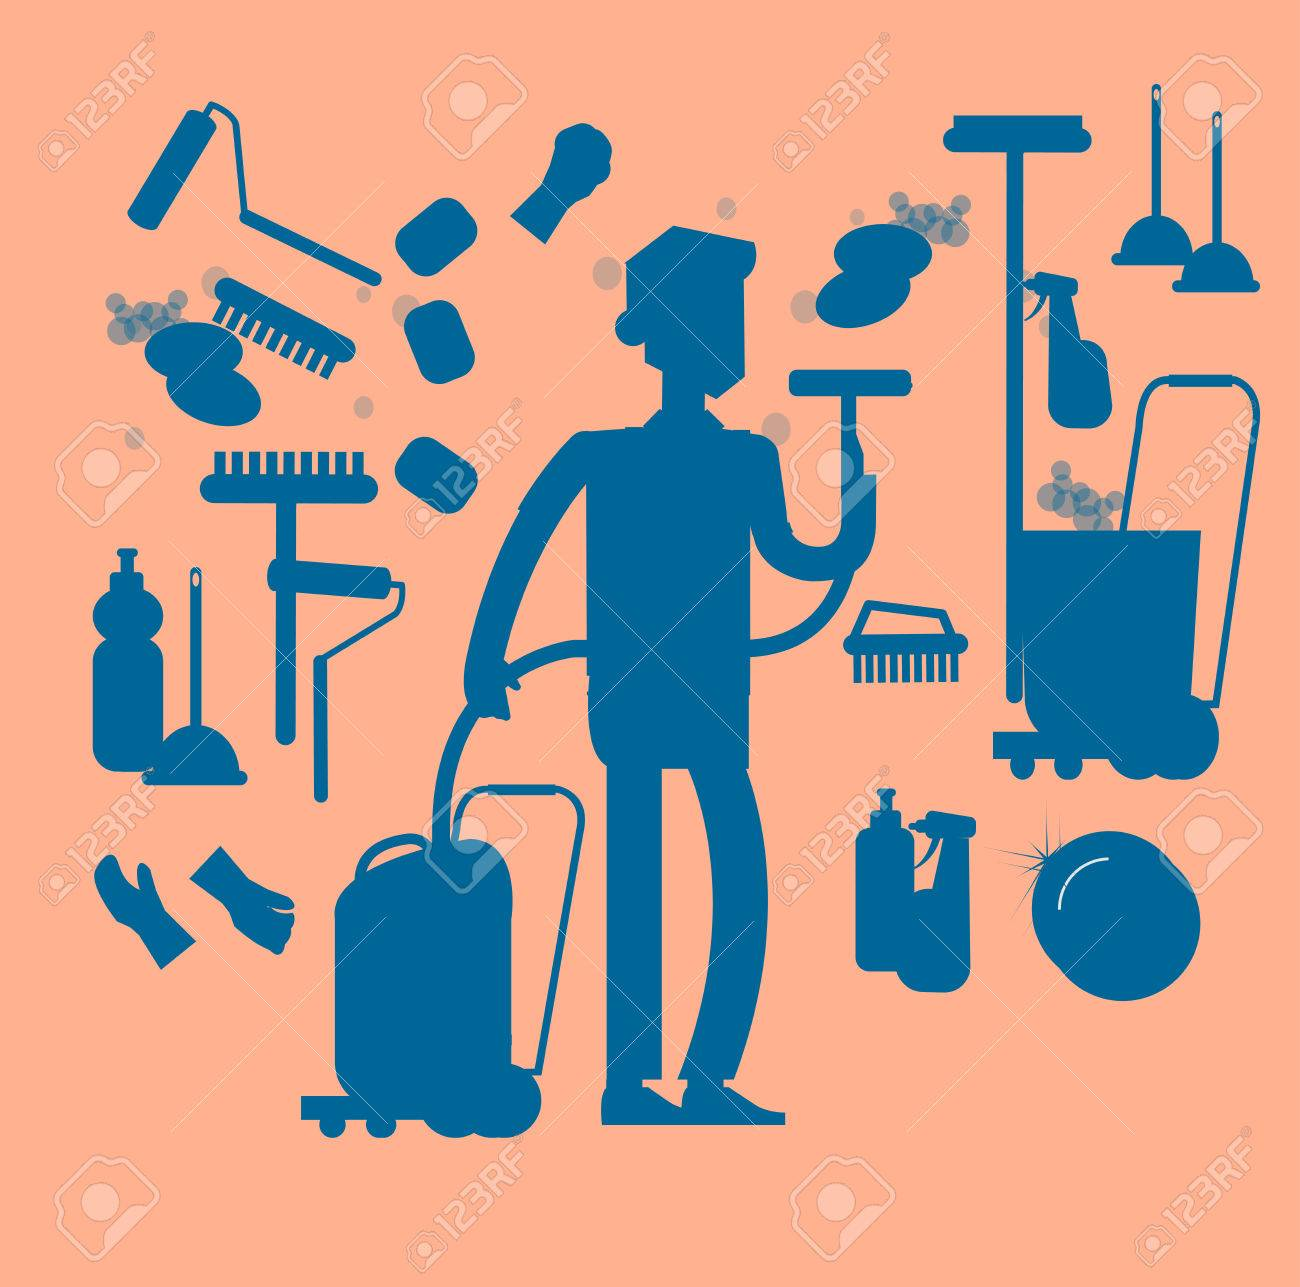 Poster design kit - Poster Design For Cleaning Service And Supplies Vector Silhouette Character Professional Housekeeper Cleaning Kit